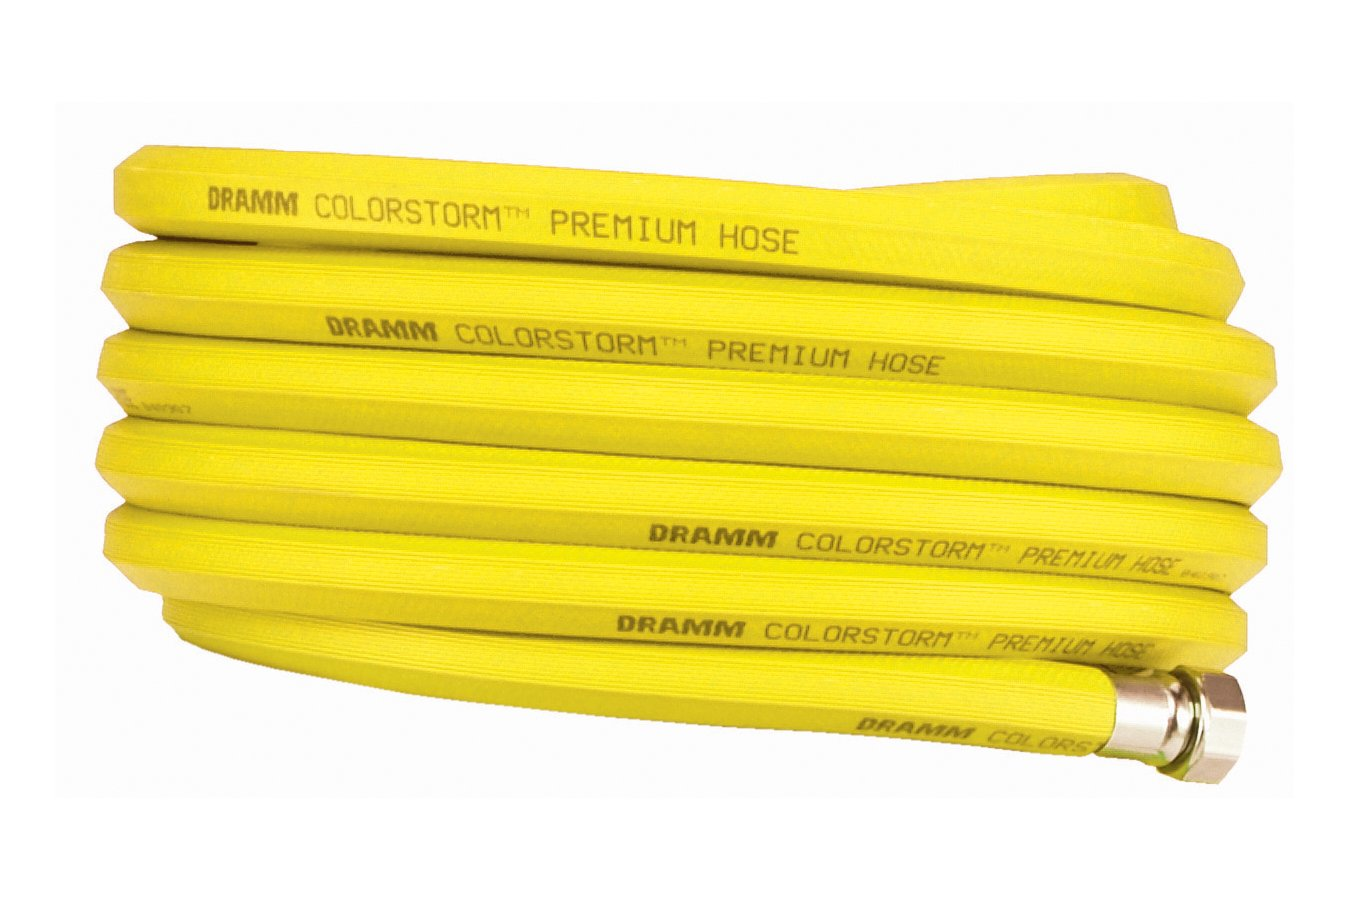 Dramm 17303 ColorStorm Premium Rubber Hose, 5/8'' x 100', Yellow by Dramm